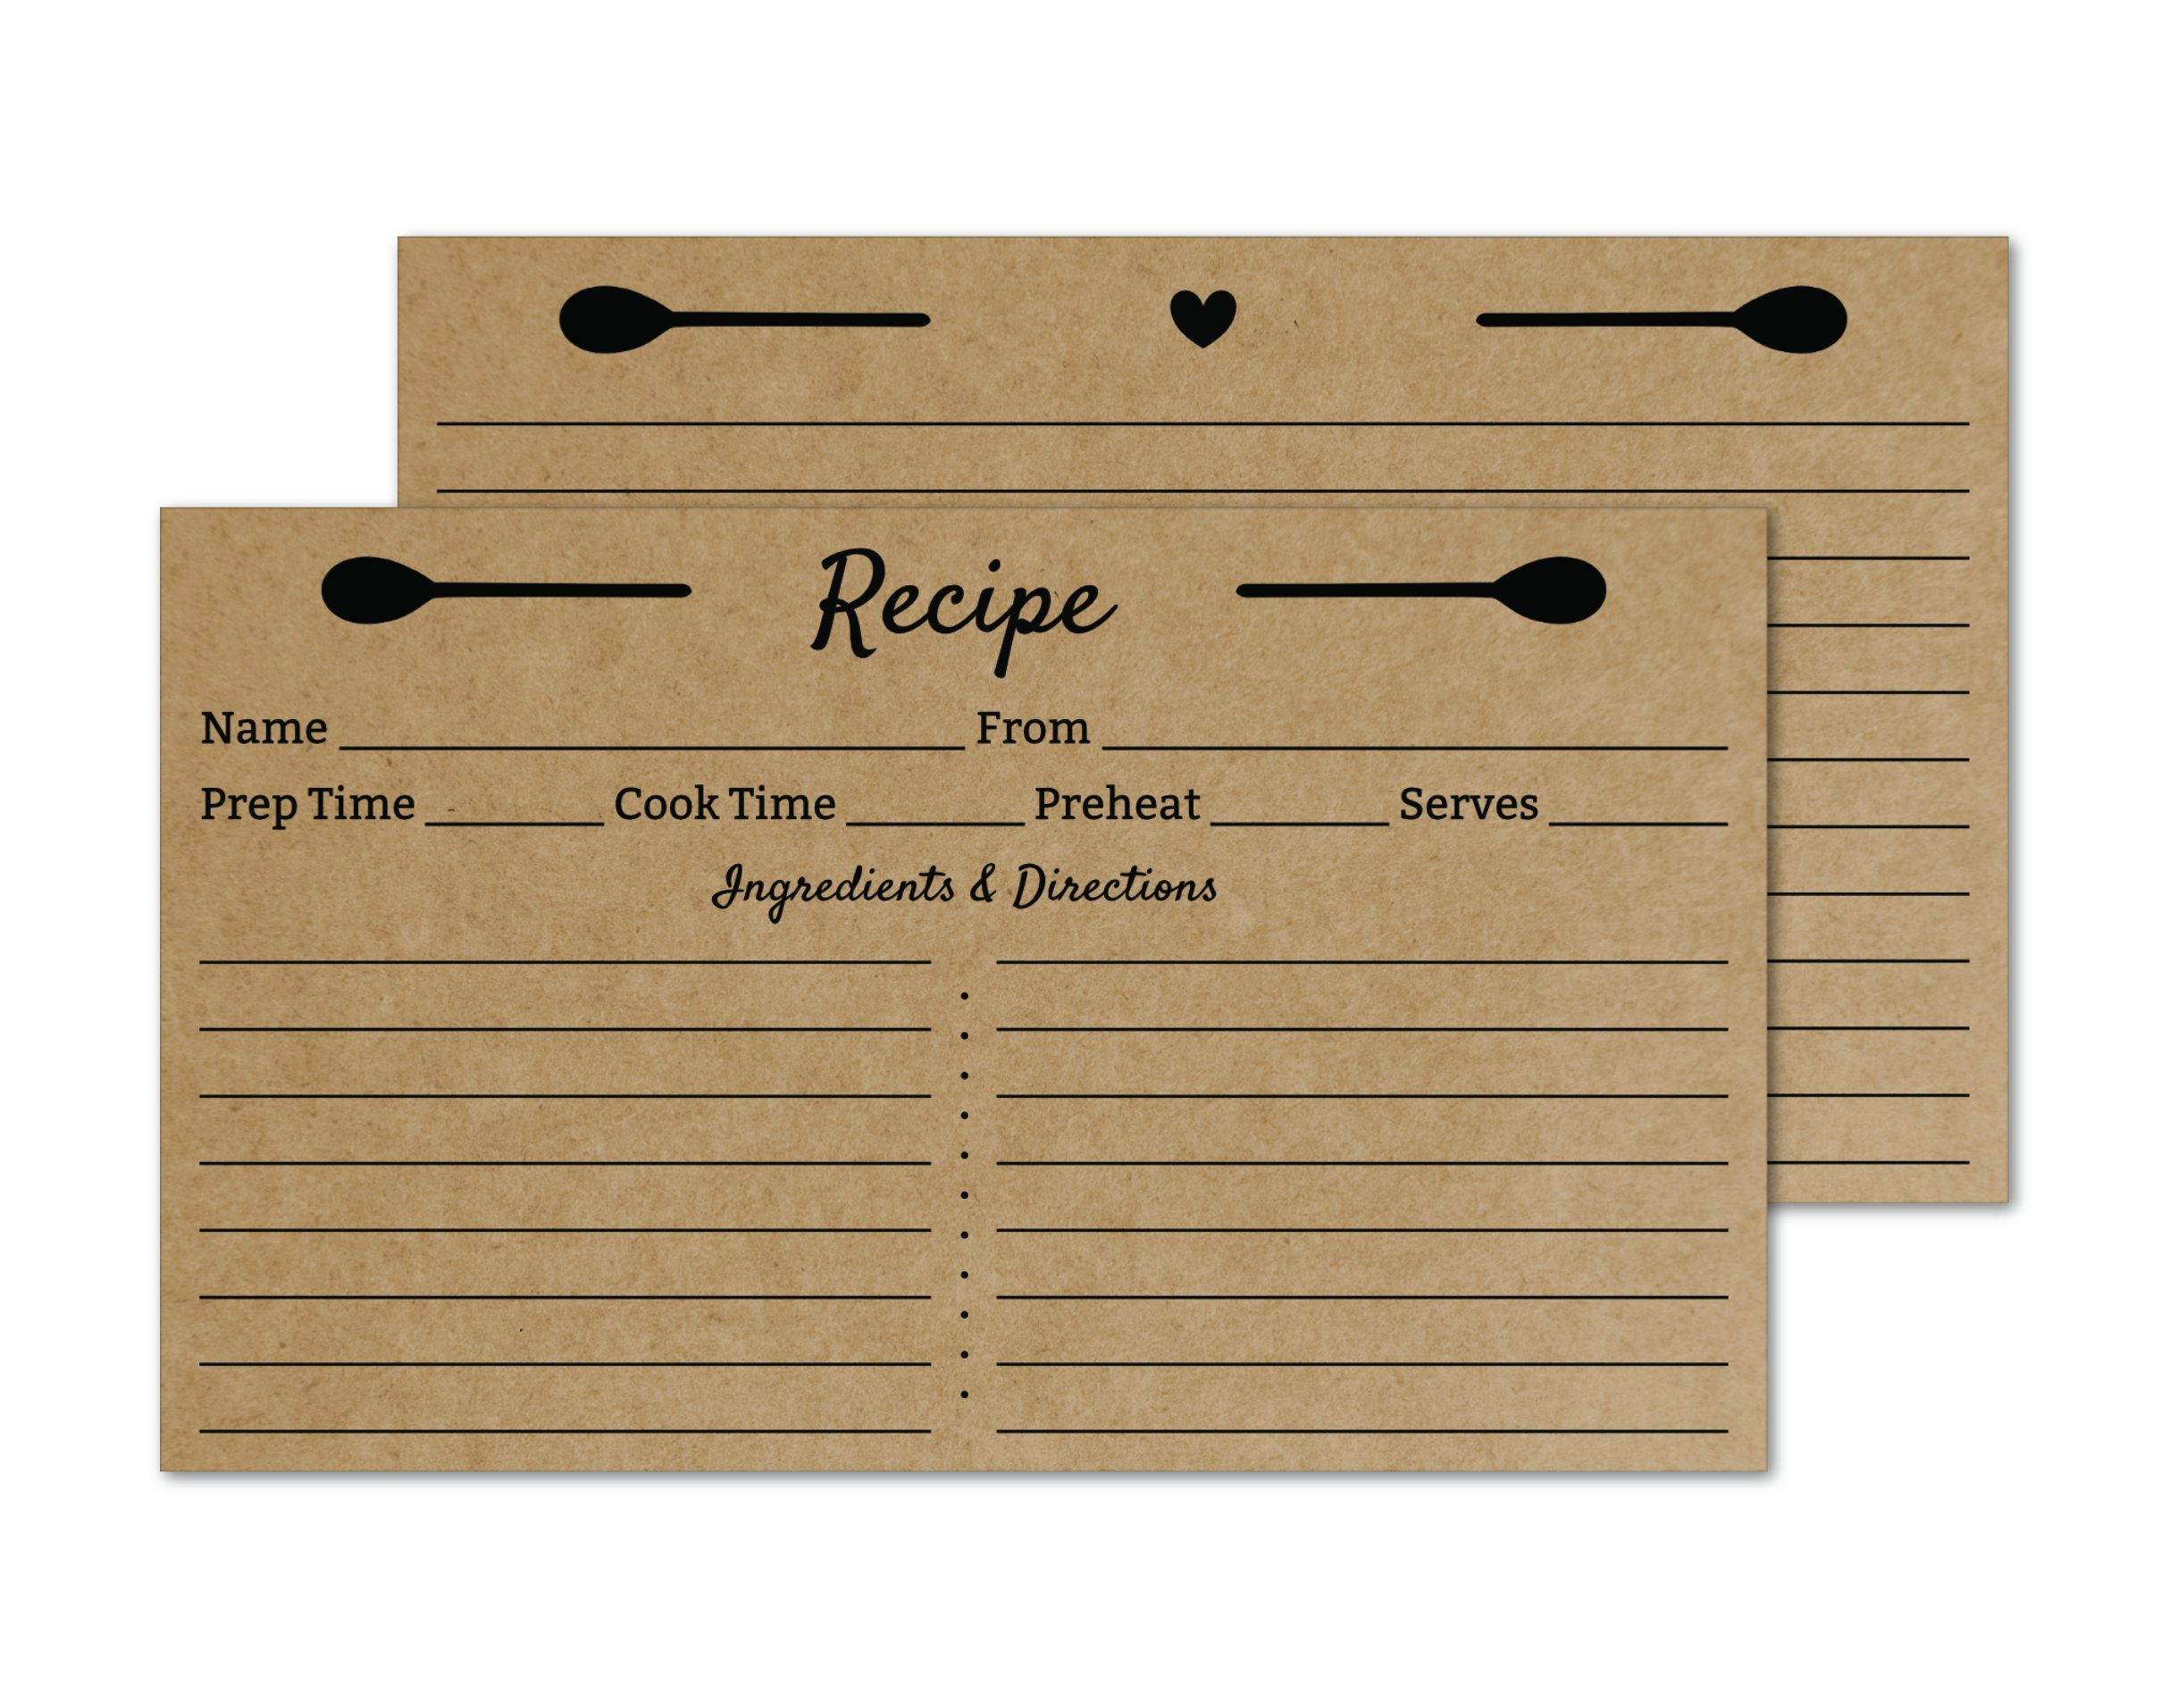 Crown Bee Printworks 3x5 Recipe Cards Double Sided Small Index Cards (Kraft Brown) 50/set - Made in the USA by Crown Bee Printworks